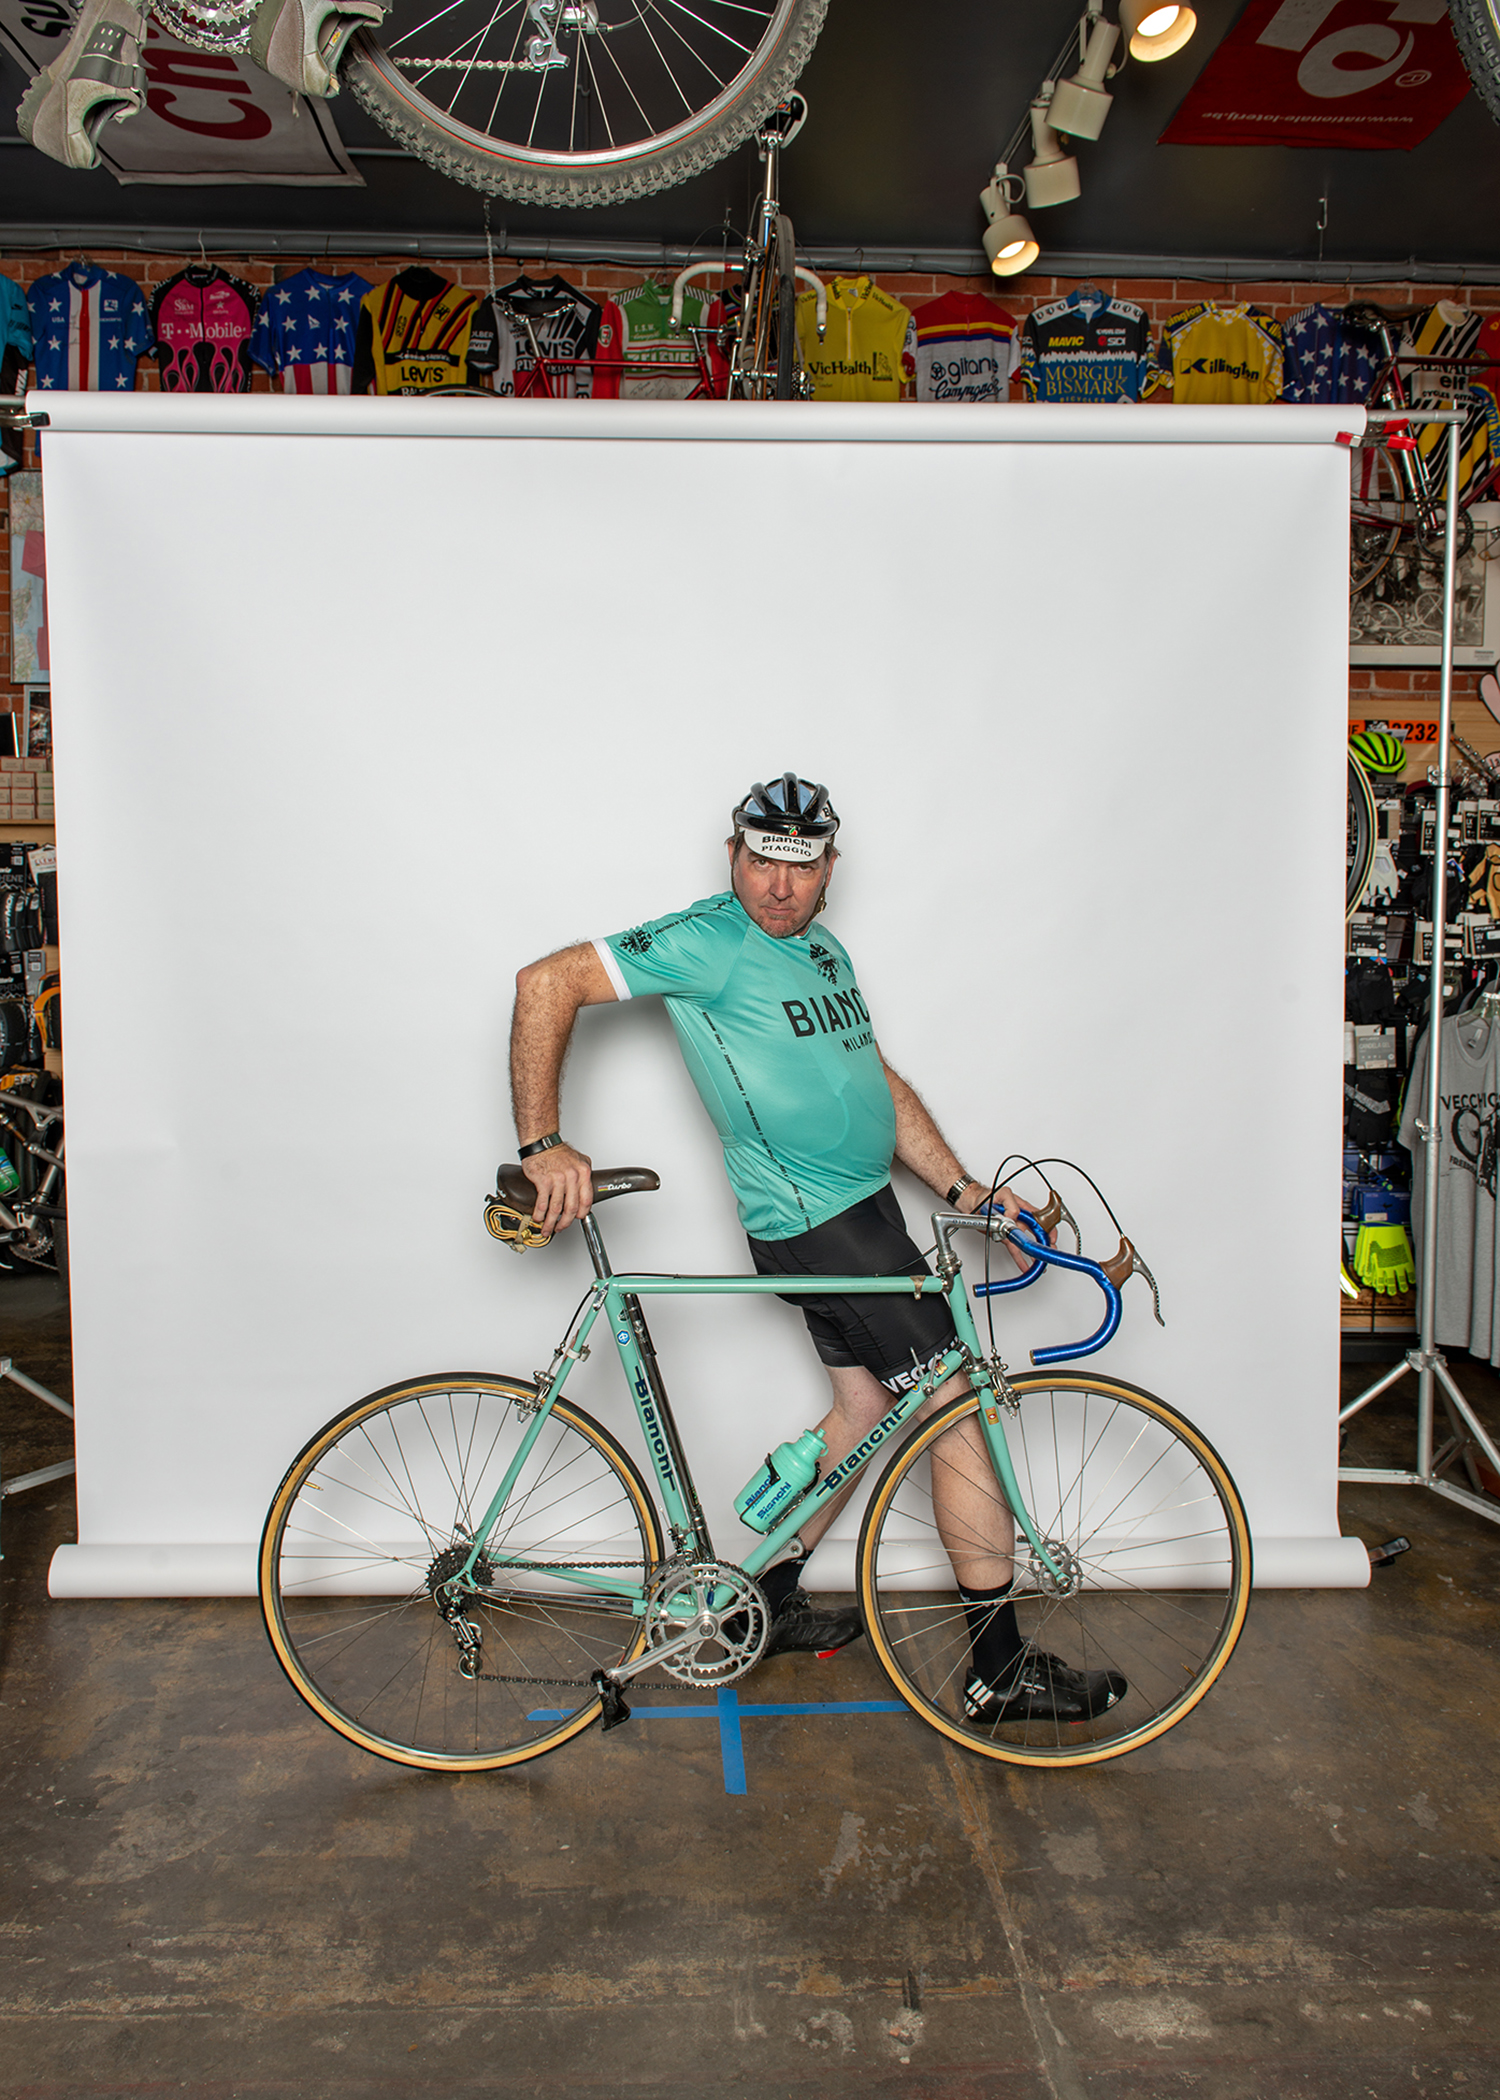 Jim and his Bianchi at the Vintage Ride Photo Booth.